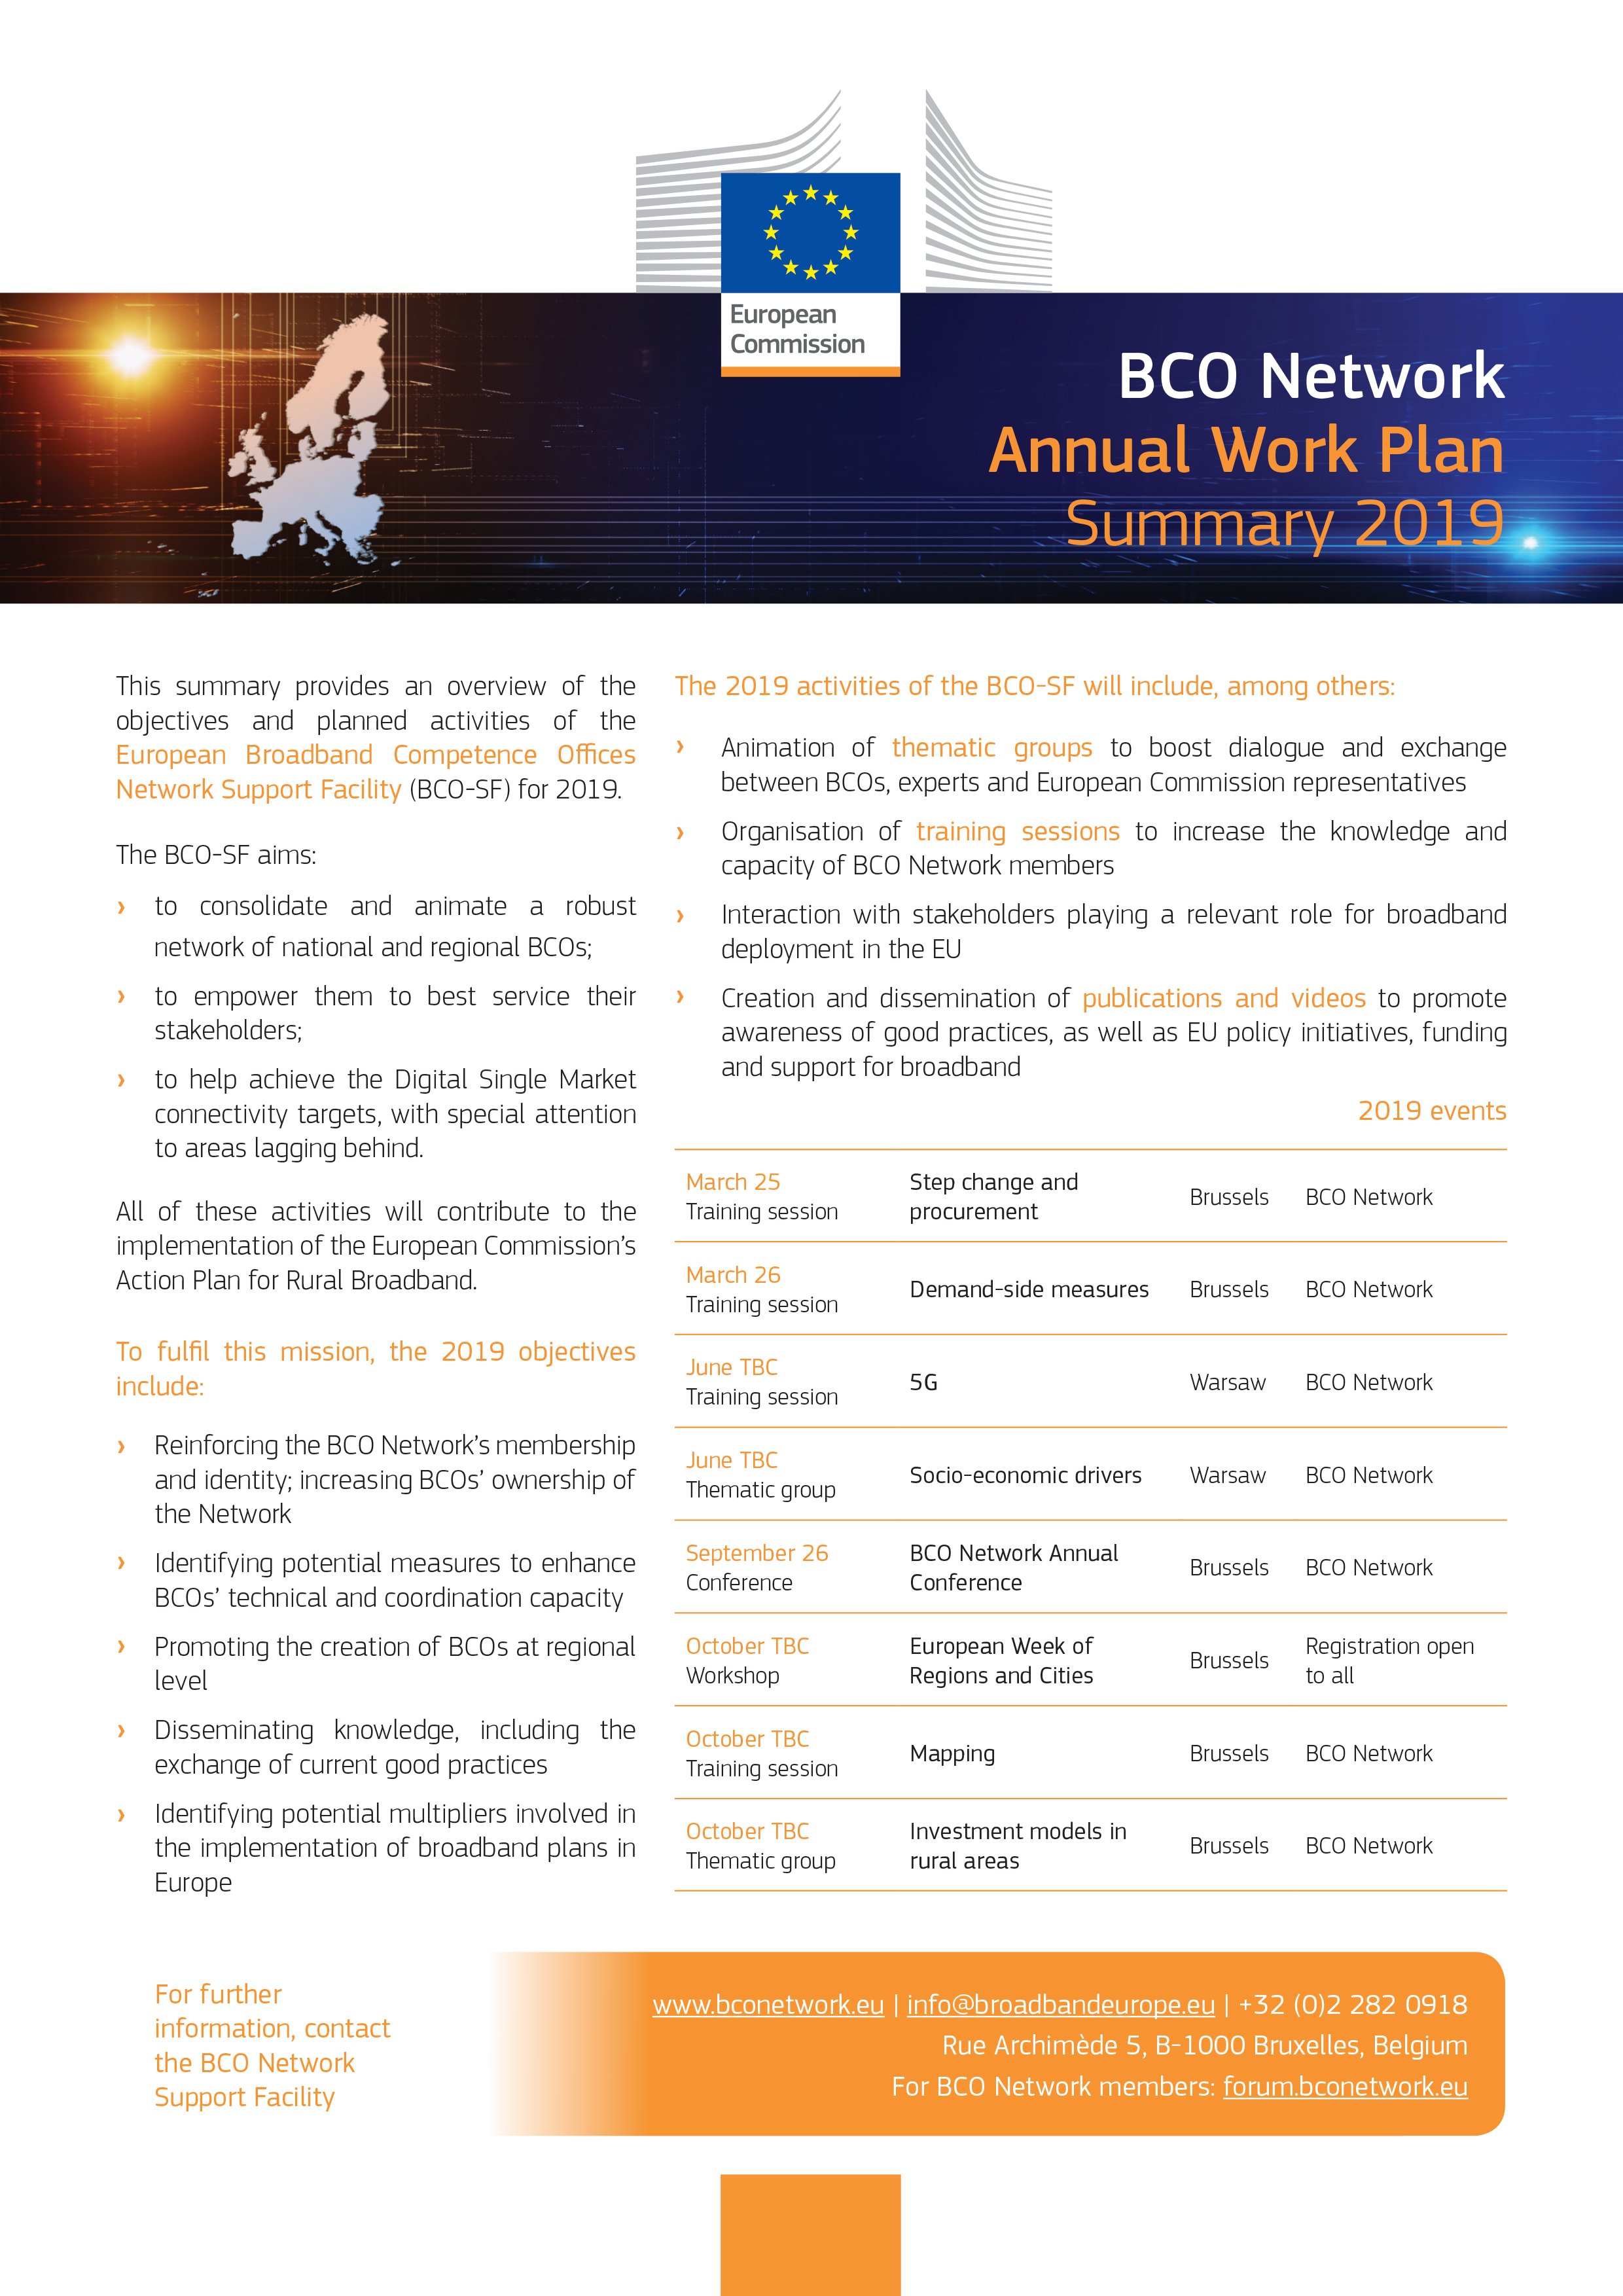 BCO Network Annual Work Plan Summary 2019